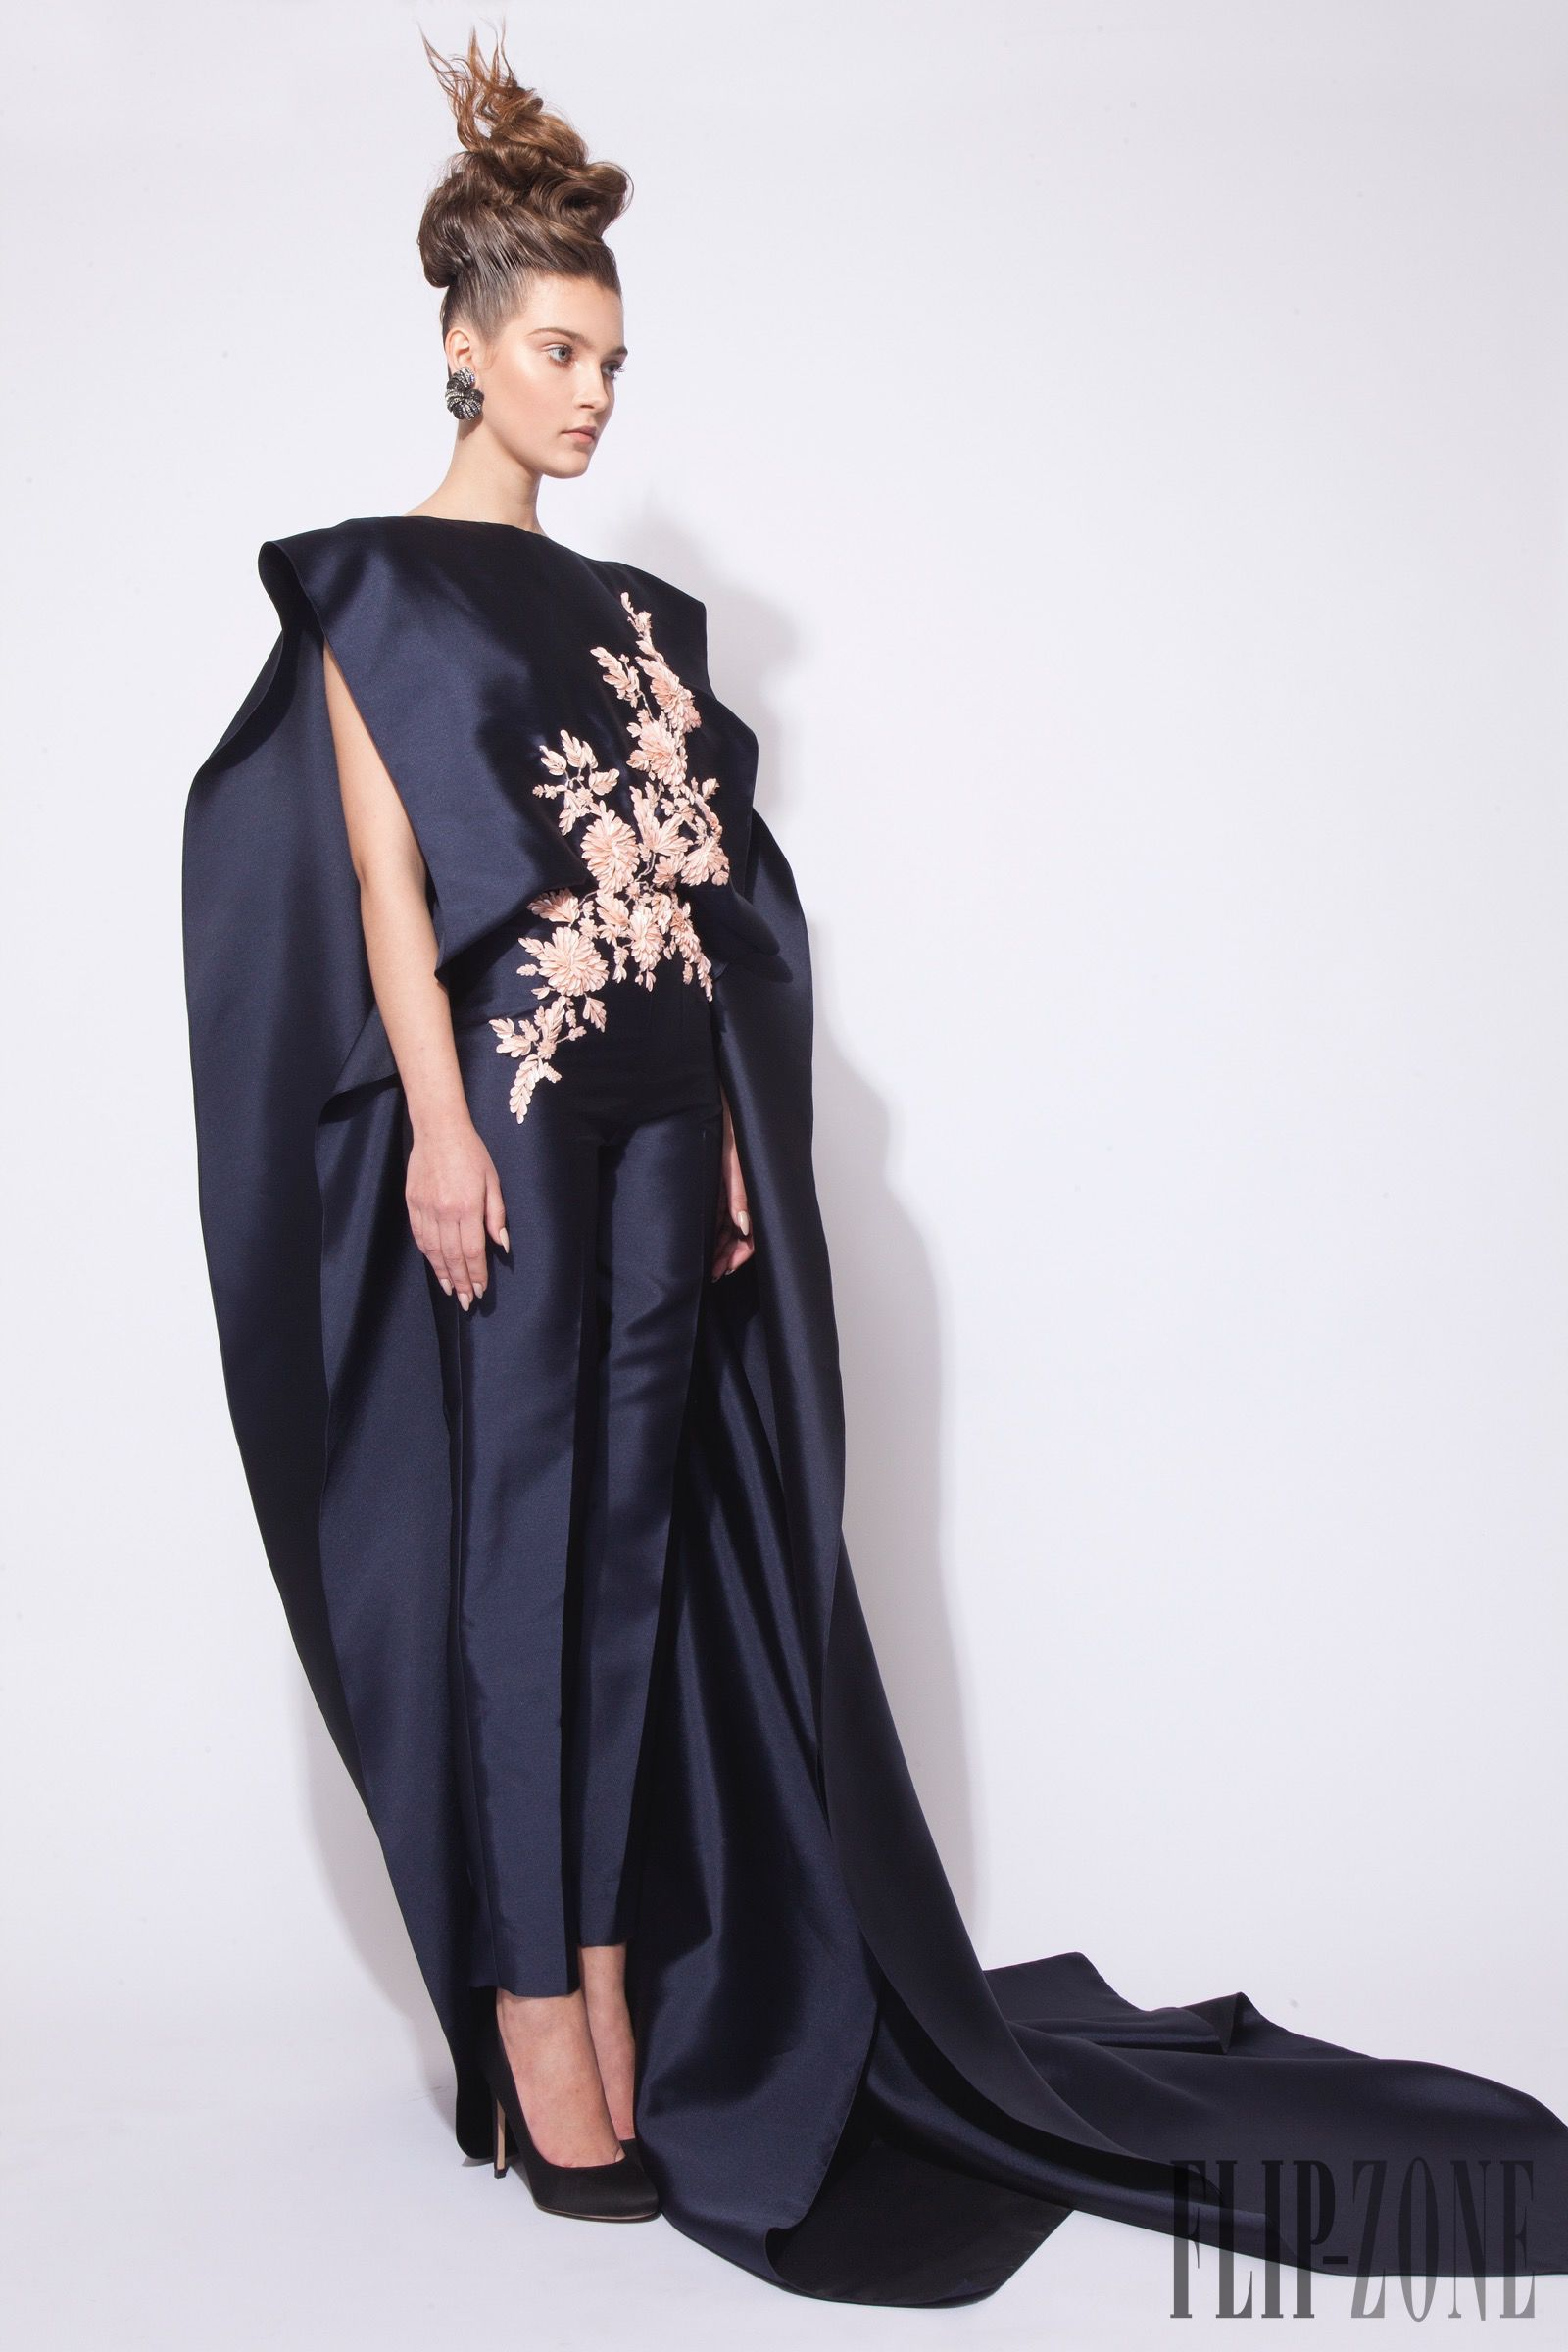 Trendy Evening Dresses Fall-Winter 2015-2016 images